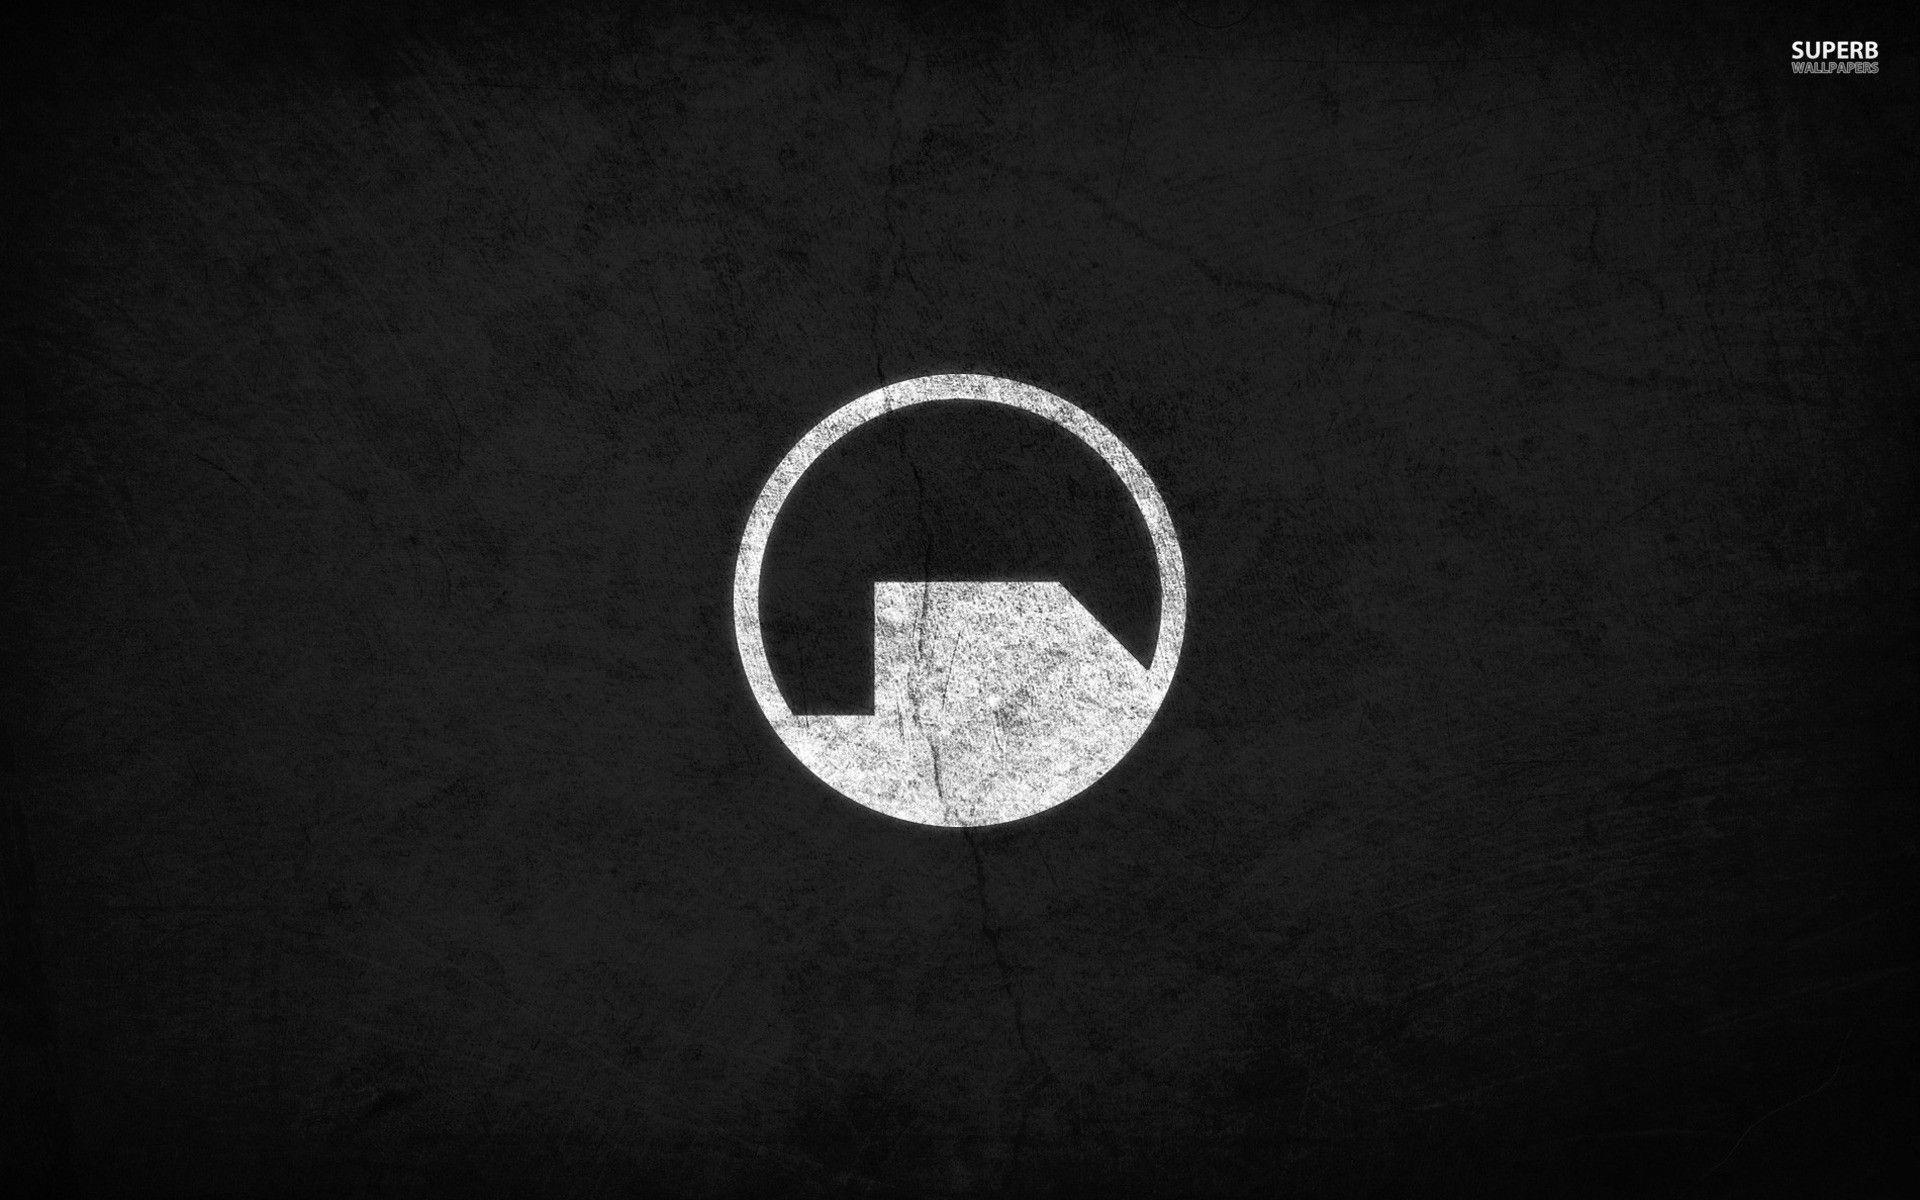 Black Mesa Wallpapers - Full HD wallpaper search